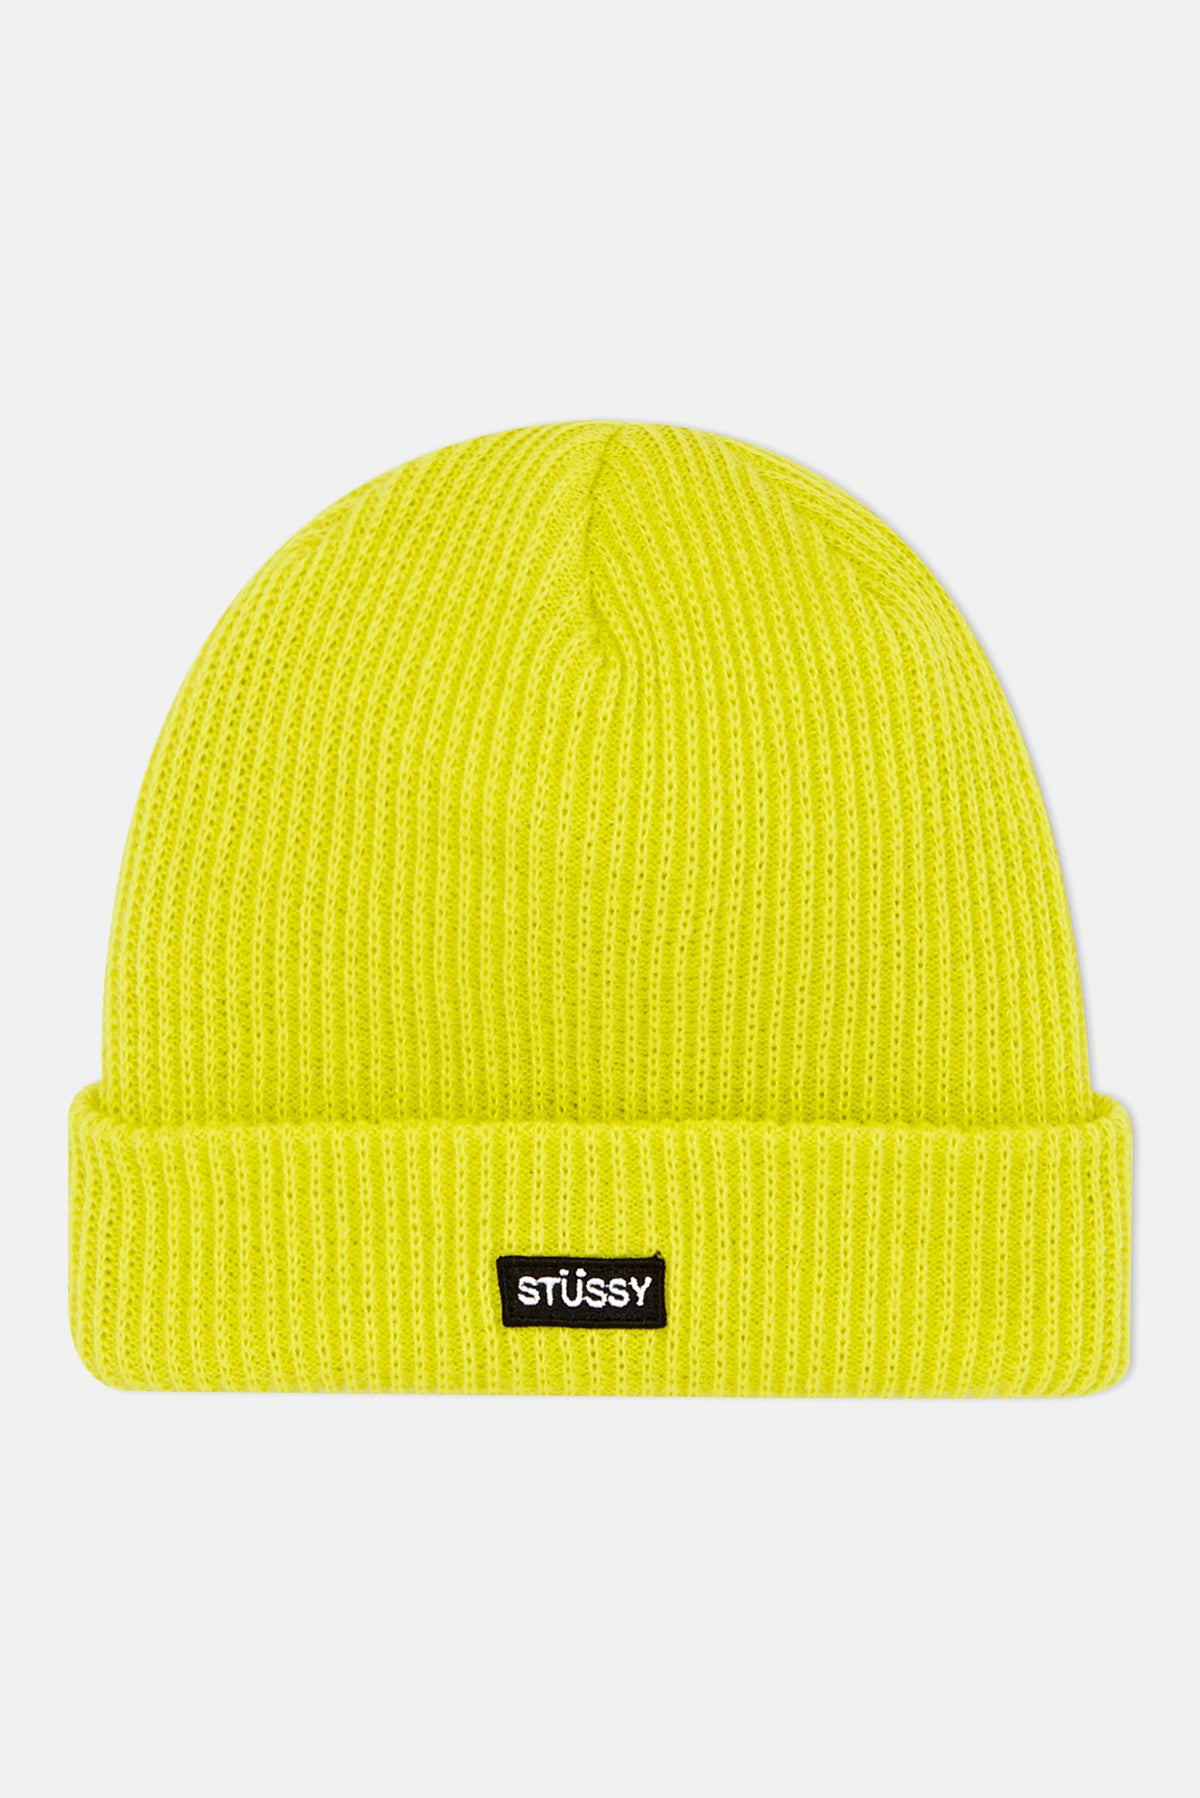 077d871df6310 Stussy Small Patch Watch Cap Beanie available from Priory